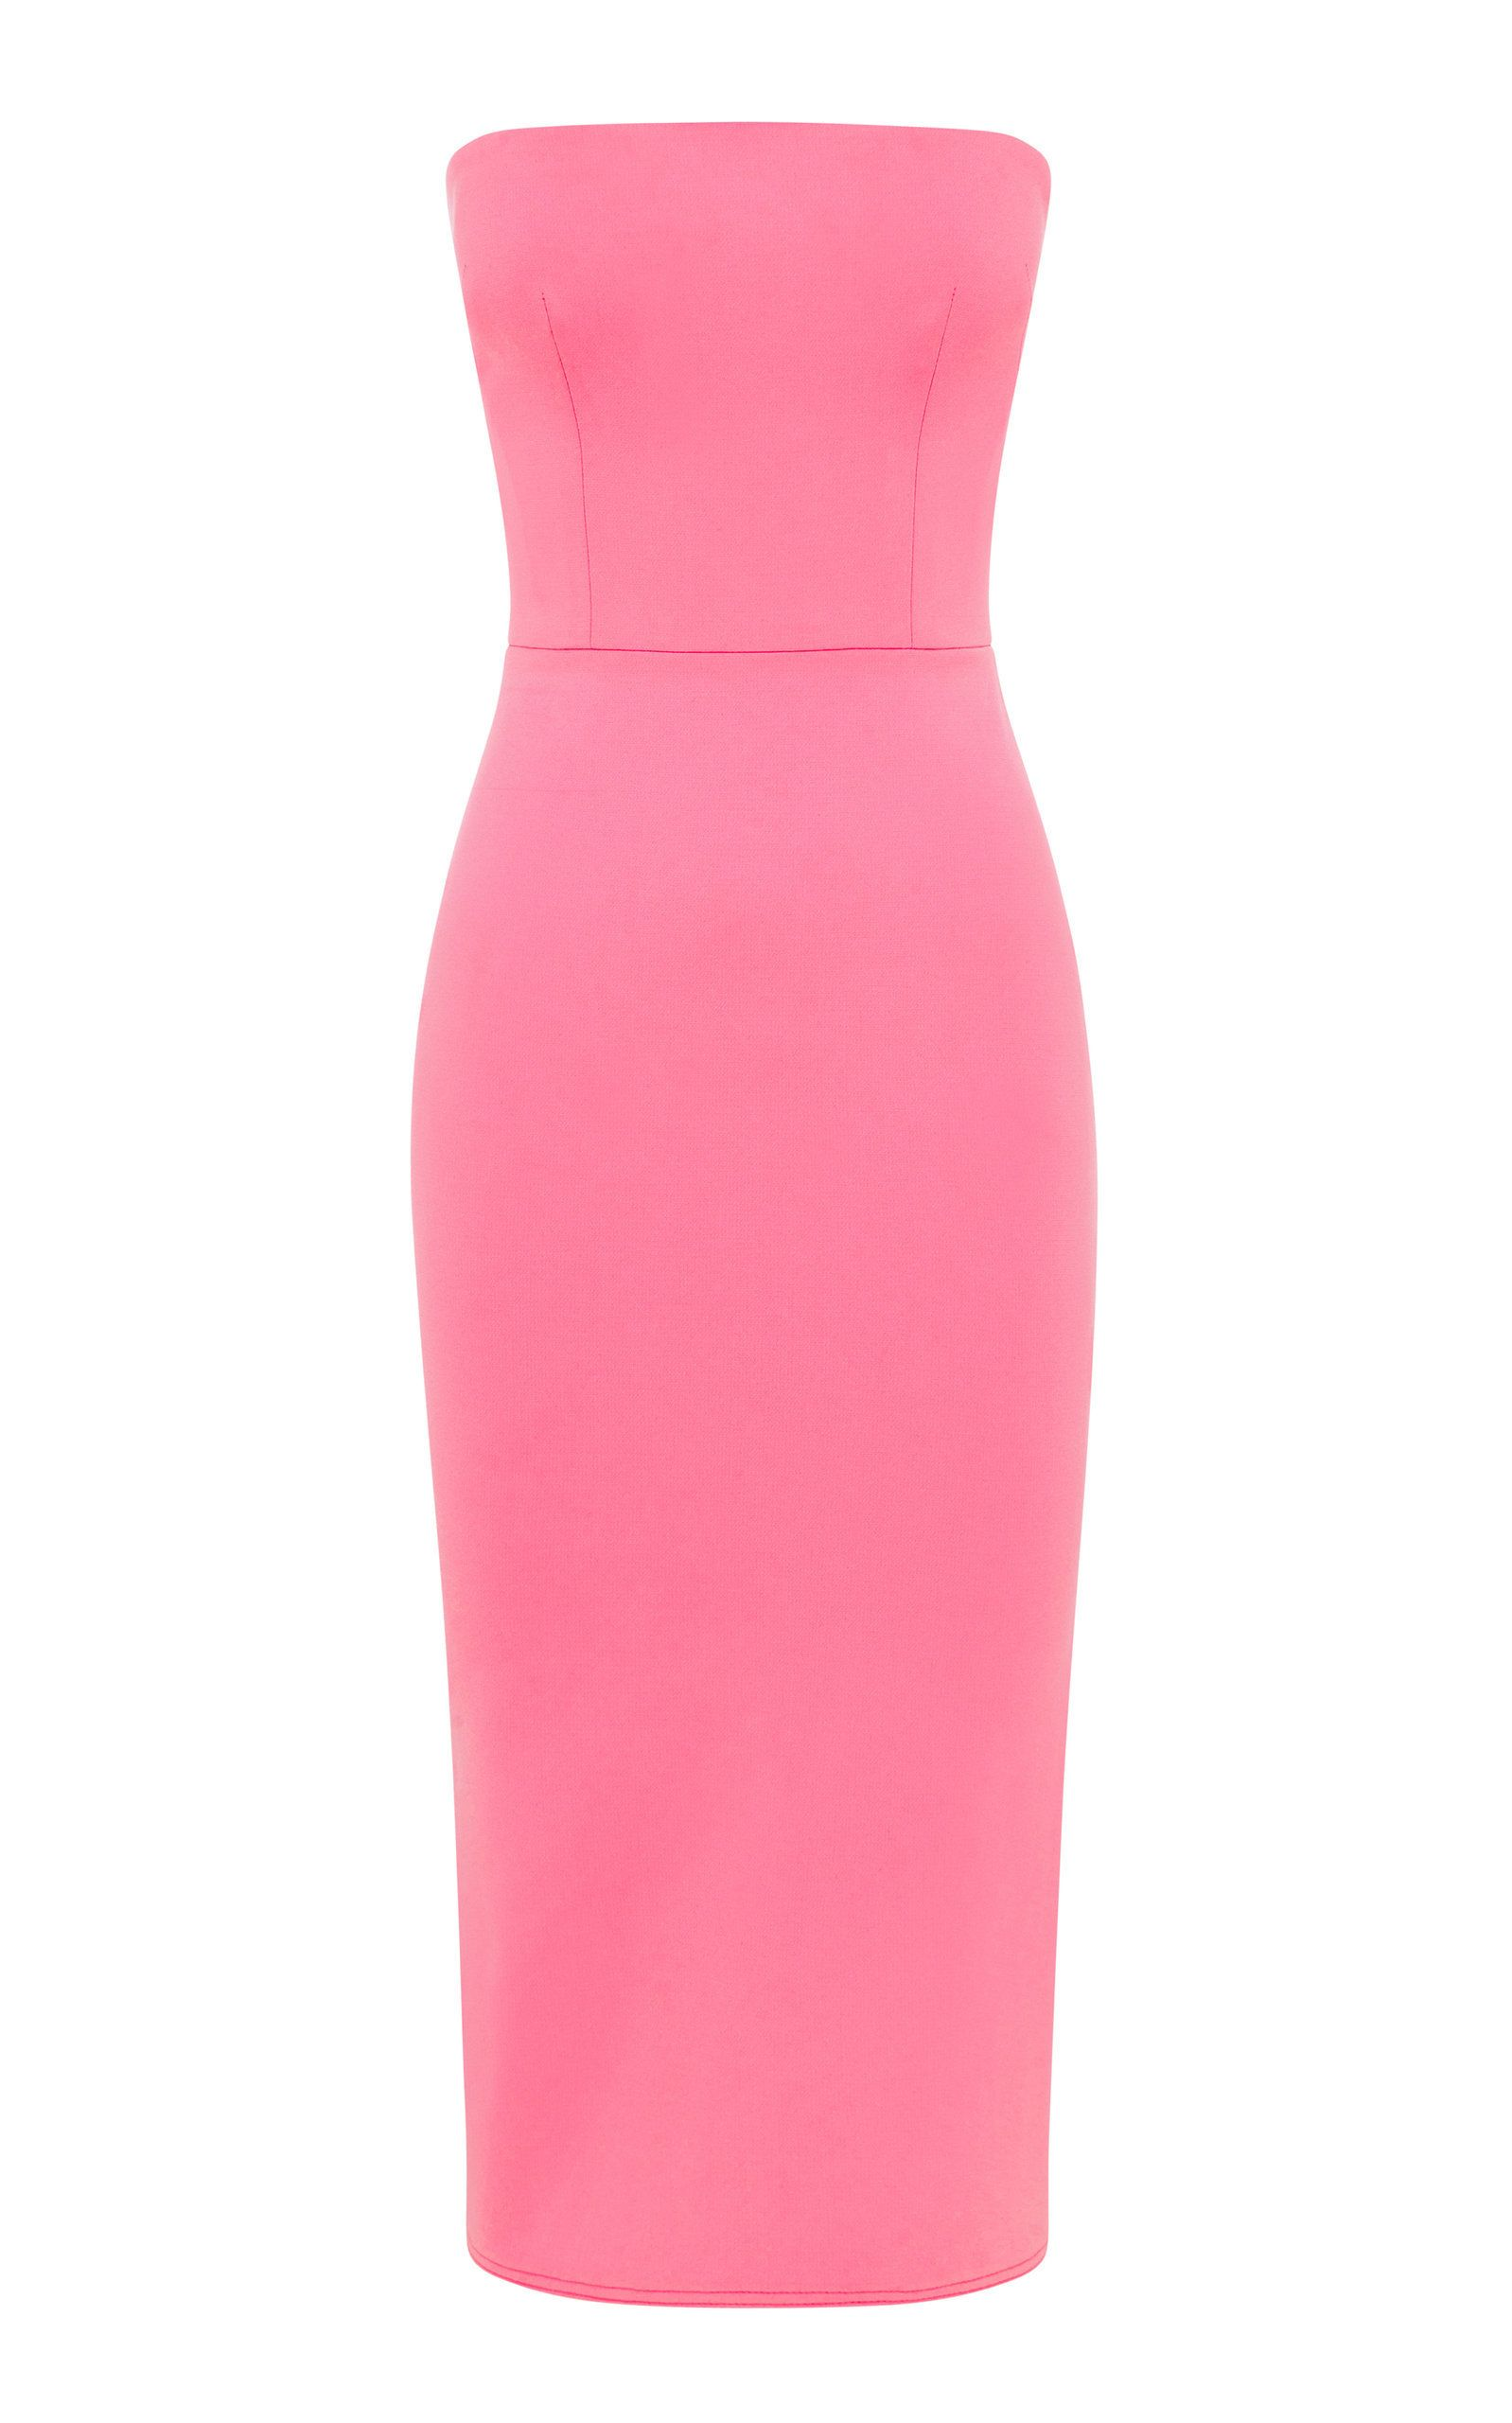 Alex Perry Kenzie Stretch Strapless Lady Dress | Fashion Lust ...